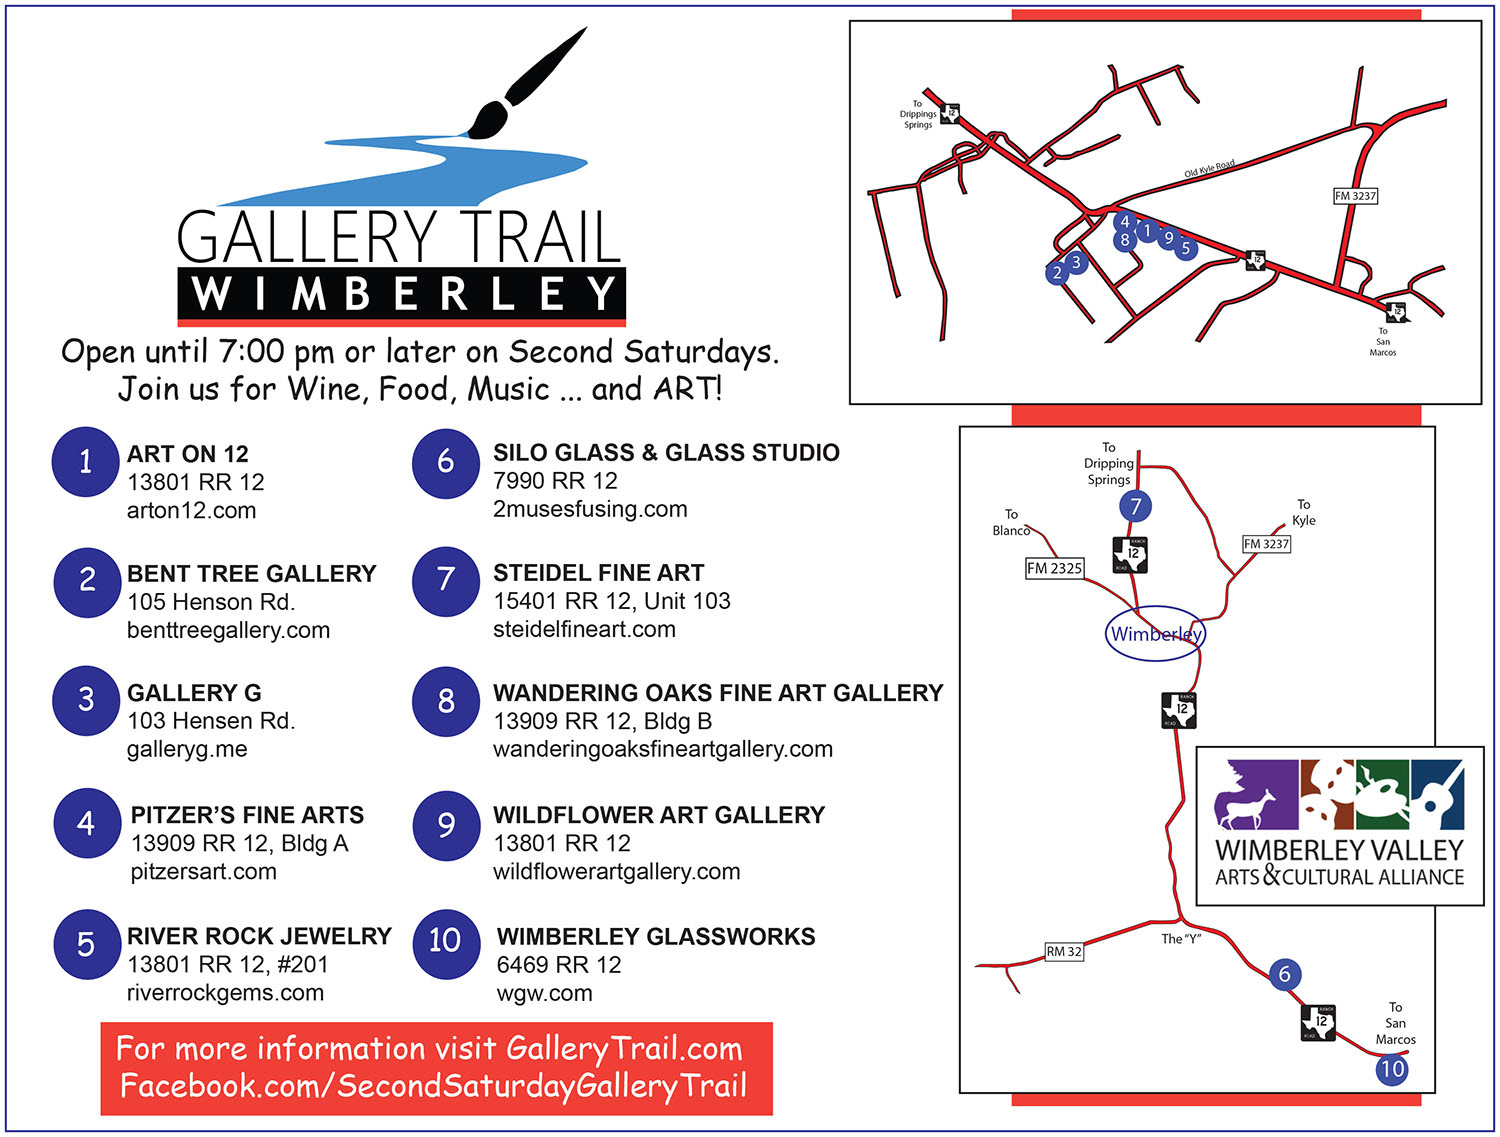 Gallery Trail Map for Wimberley's Art Galleries